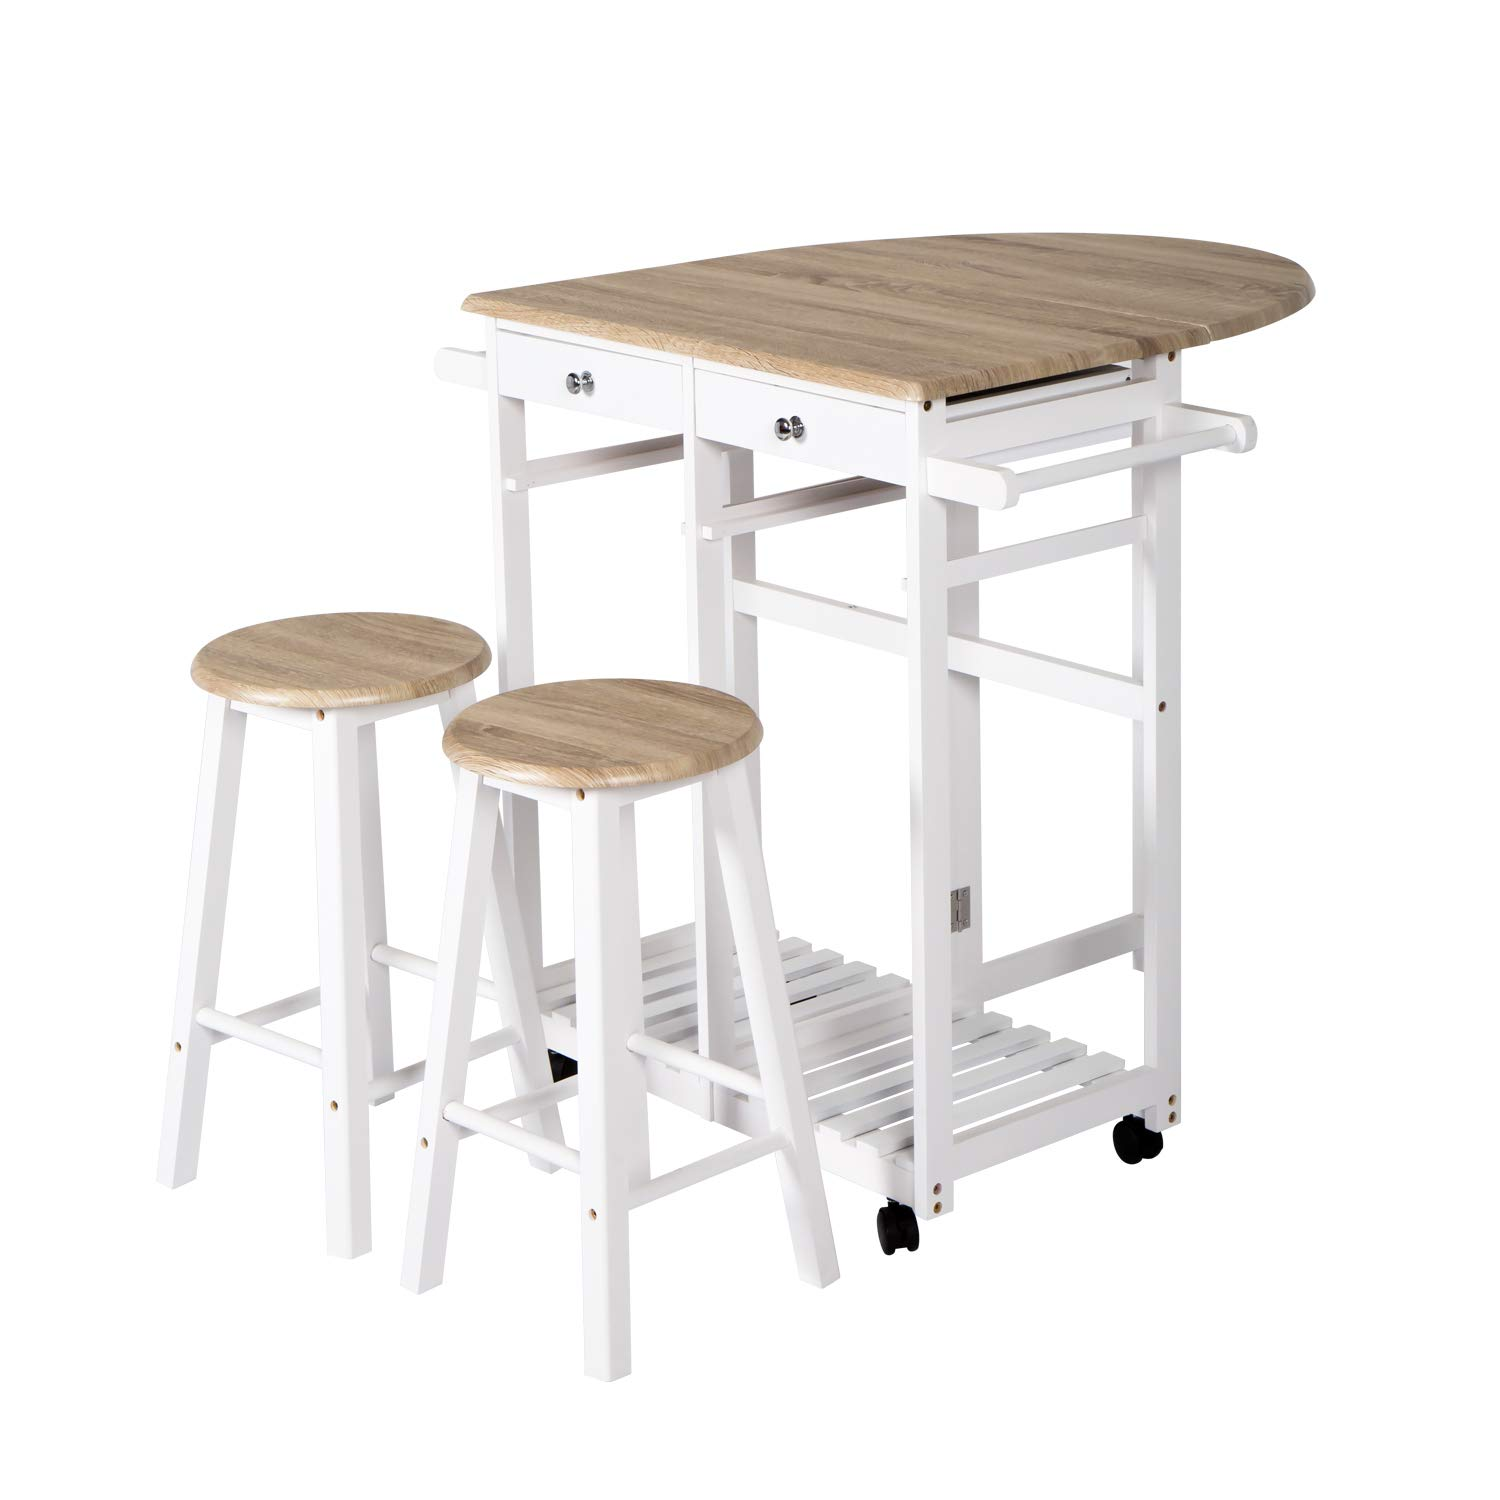 Multi-Purpose Wood Rolling Wood Kitchen Island Trolley Cart Wood Top Storage Cabinet Utility (White & Wood Color)